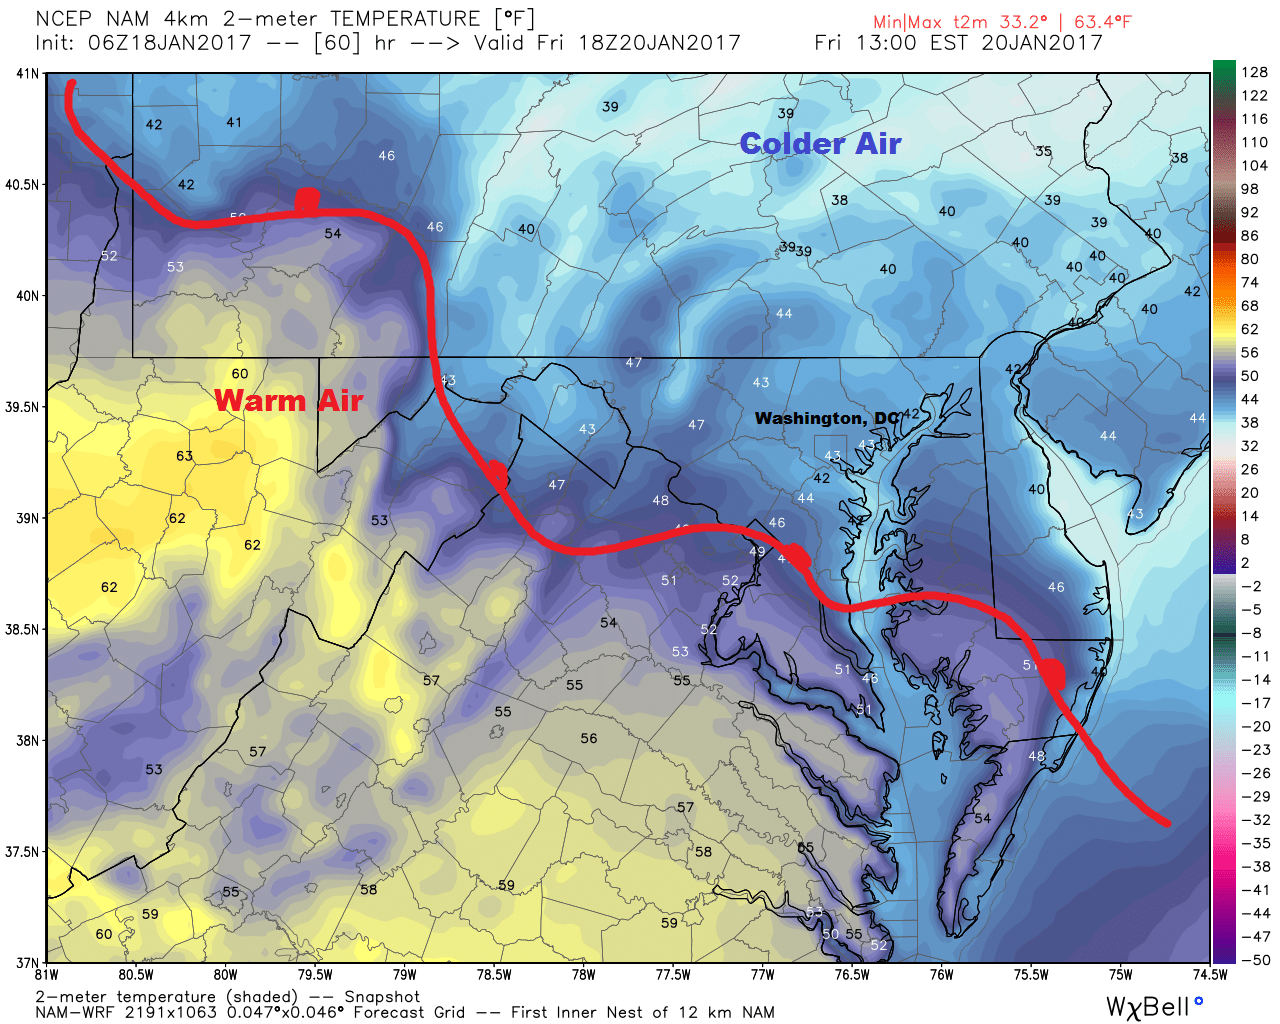 Temperatures will be cool with rain Friday morning in Washington, DC